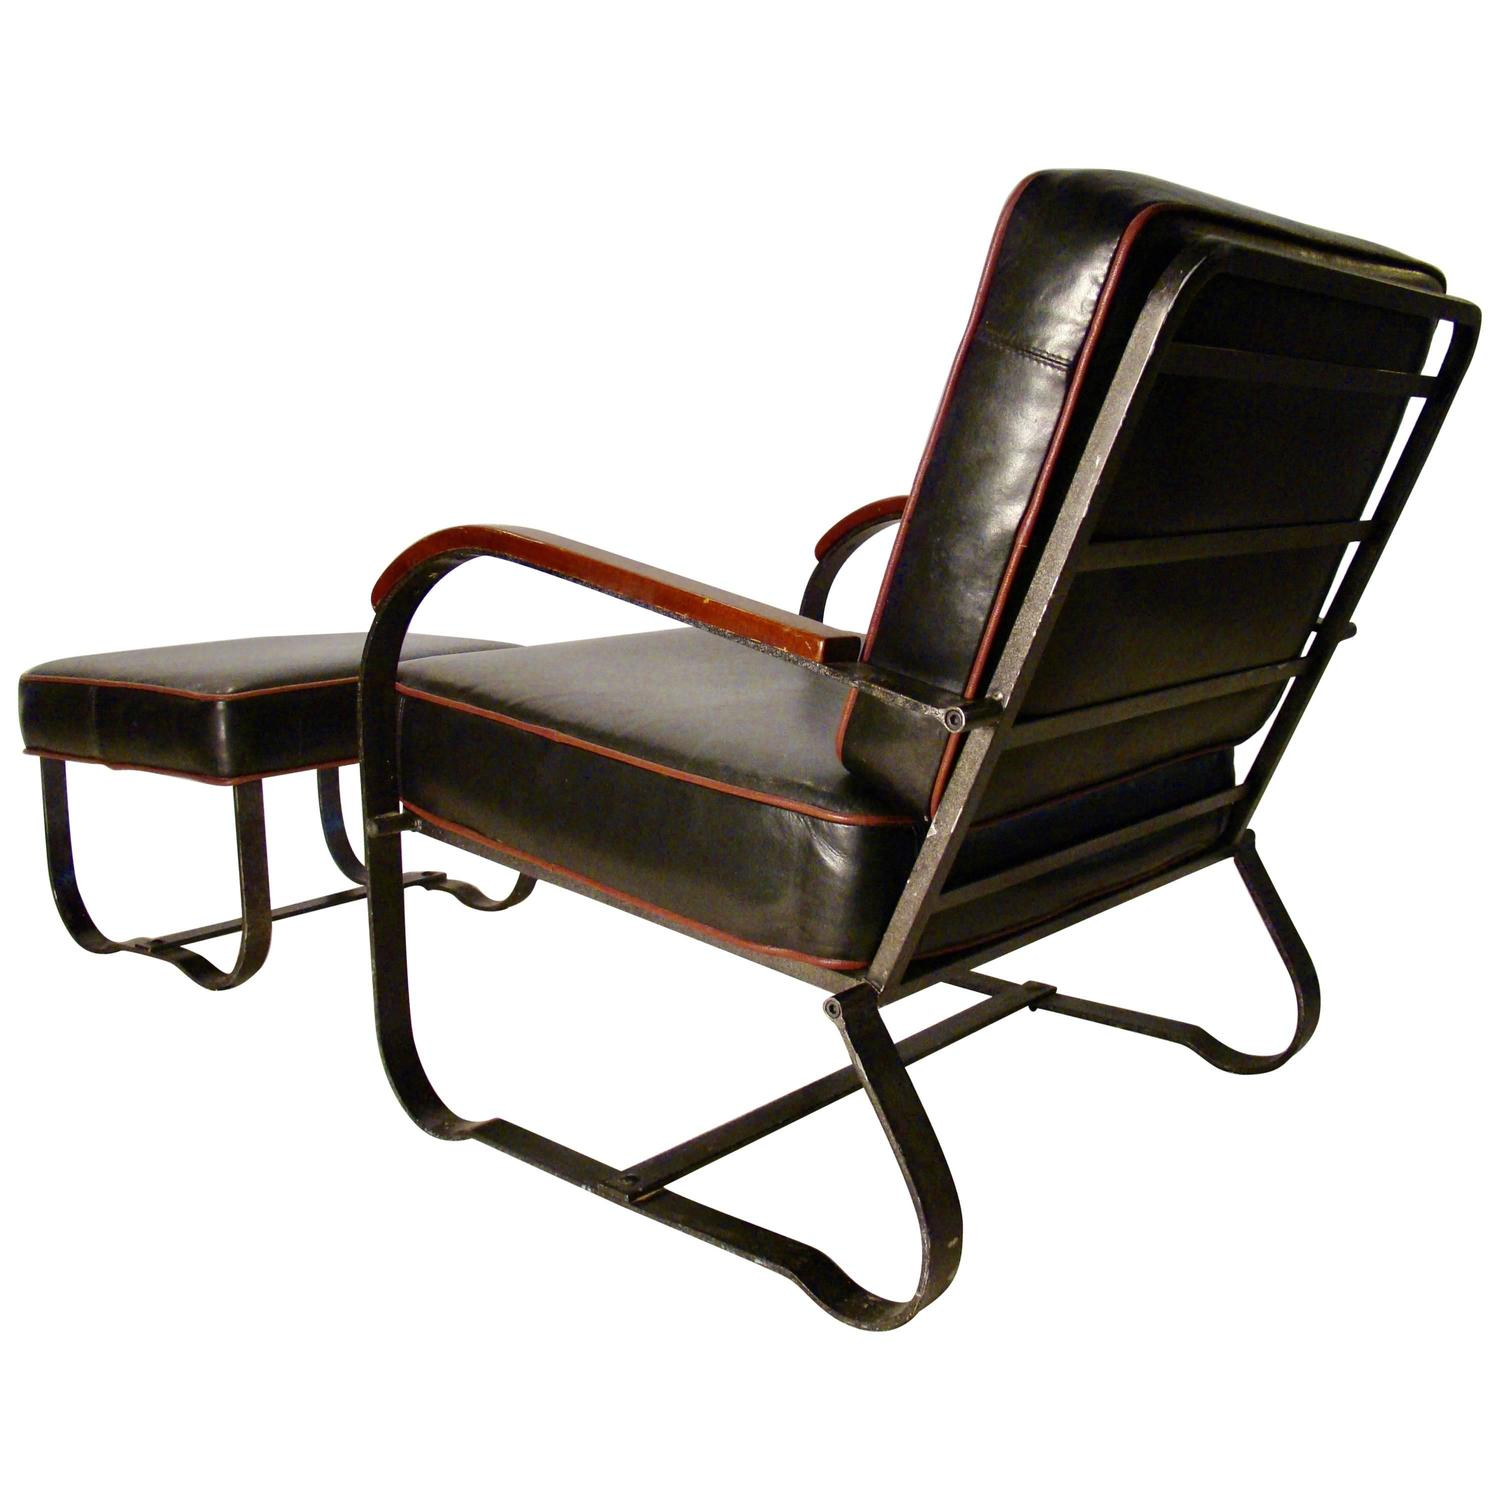 Elusive Art Deco Machine Age Steel Lounge Chair And Ottoman By McKay At  1stdibs